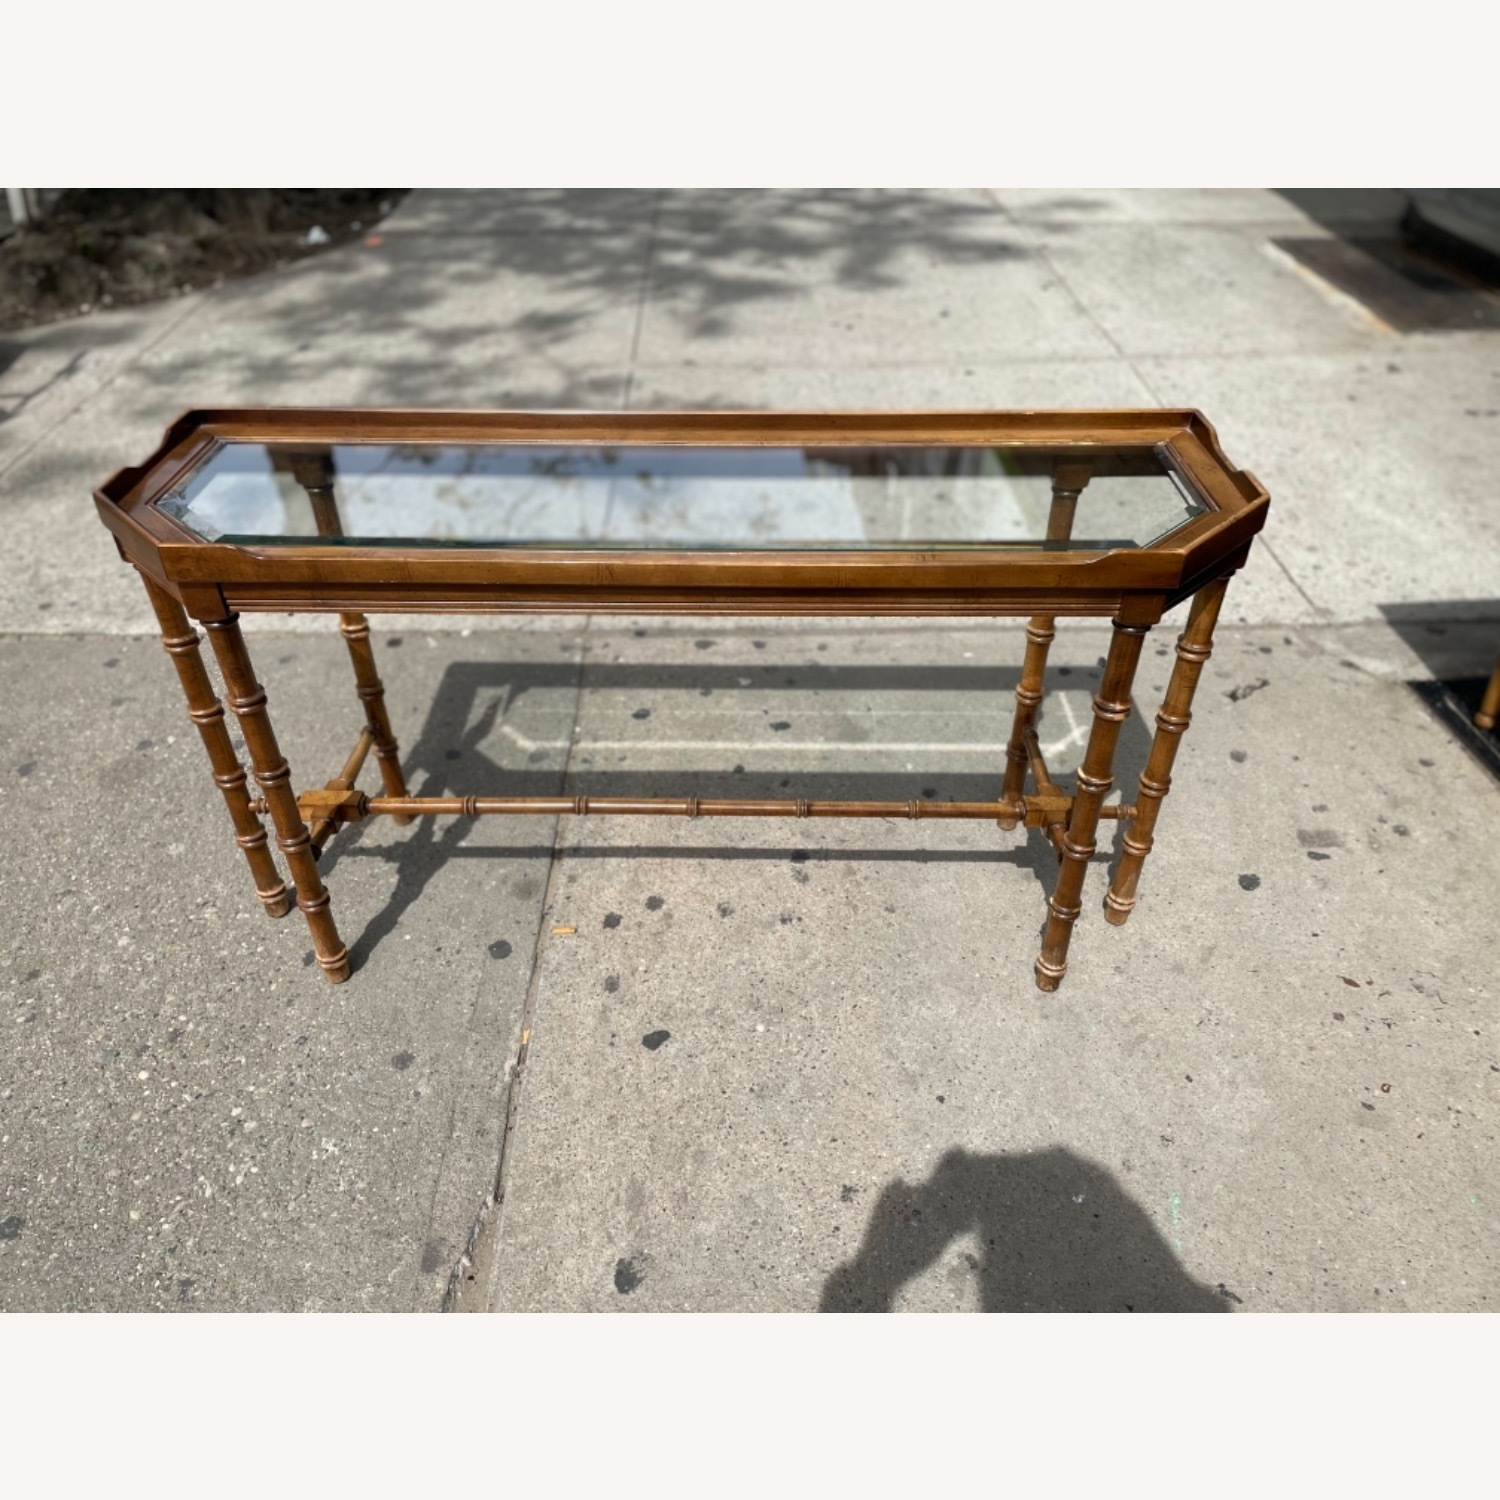 Lane 1970s Console Table w/ Beveled Glass Top - image-1